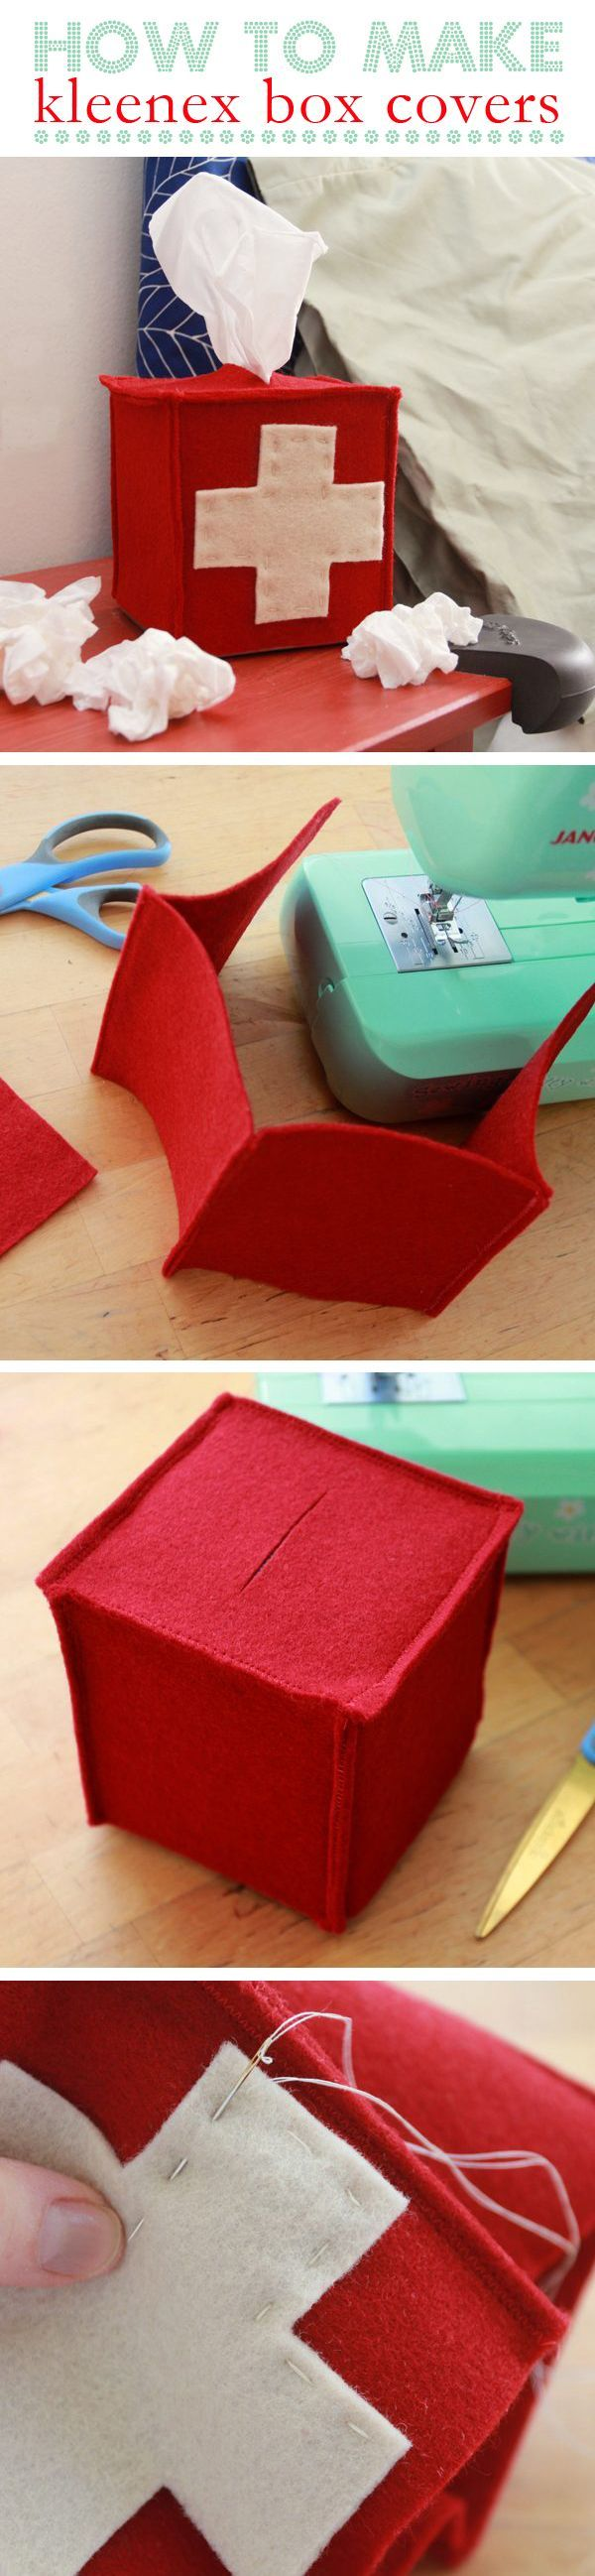 DIY felt tissue box cover. You can make it any design you'd like to match your home. This is great for allergy and flu season! www.ehow.com/...